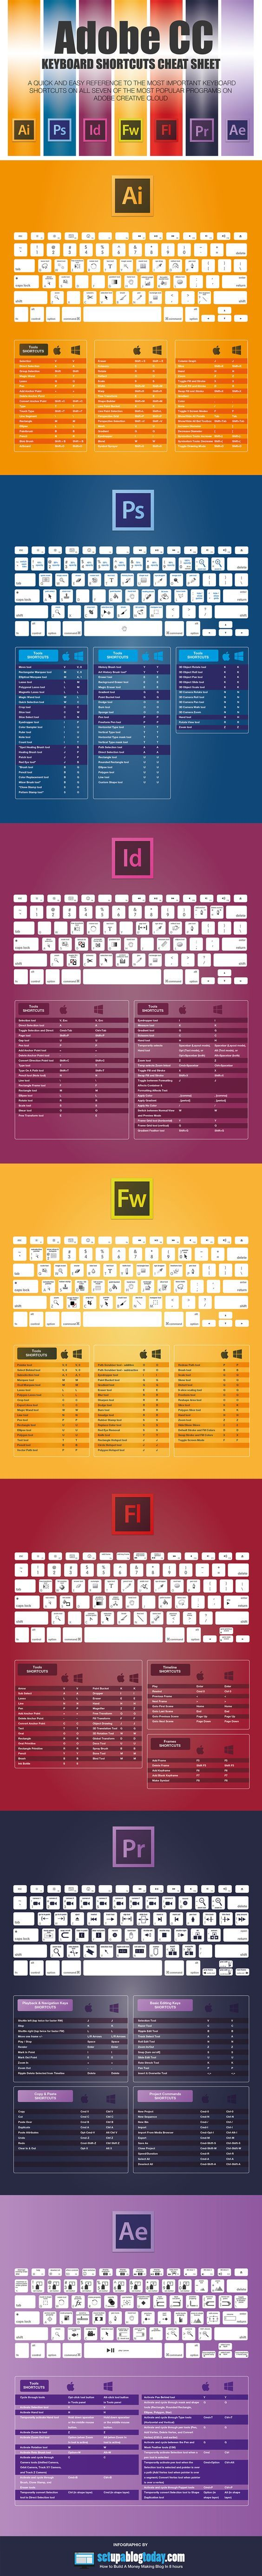 An infographics about all shortcuts within Adobe's Creative Suite: